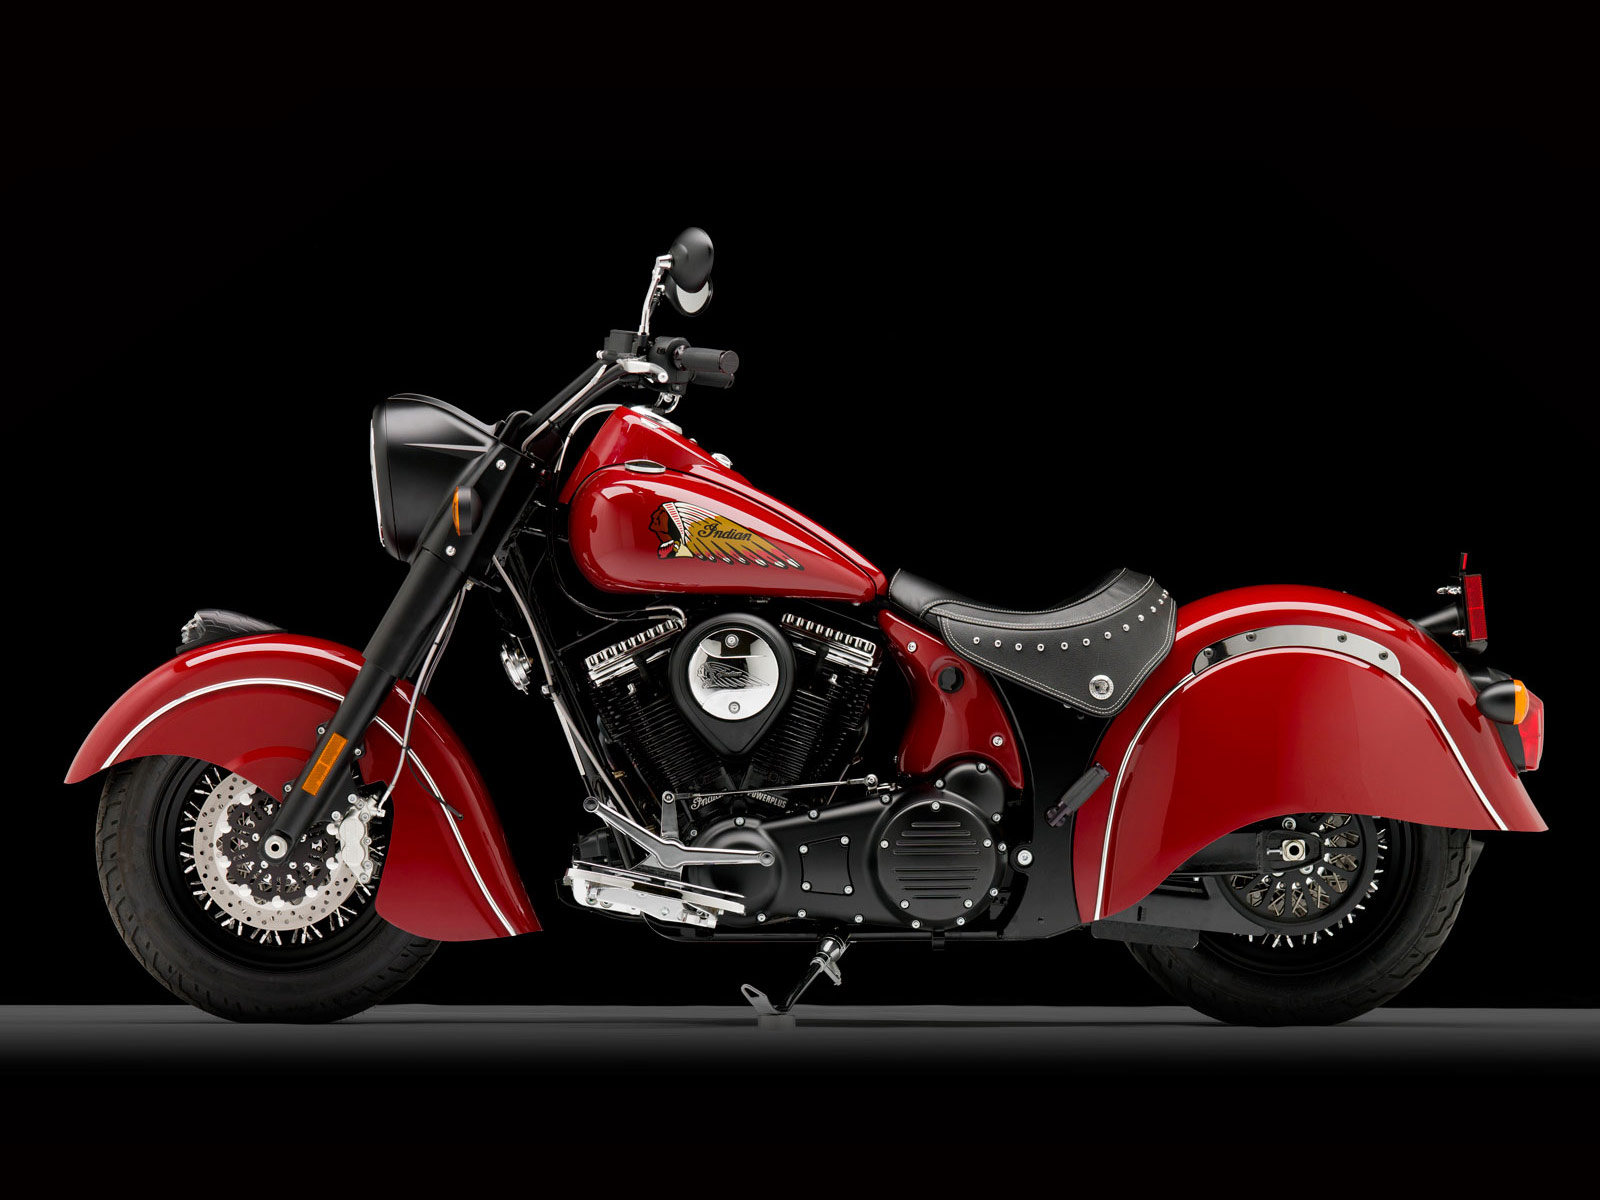 Indian Chief Deluxe 2011 images #97857